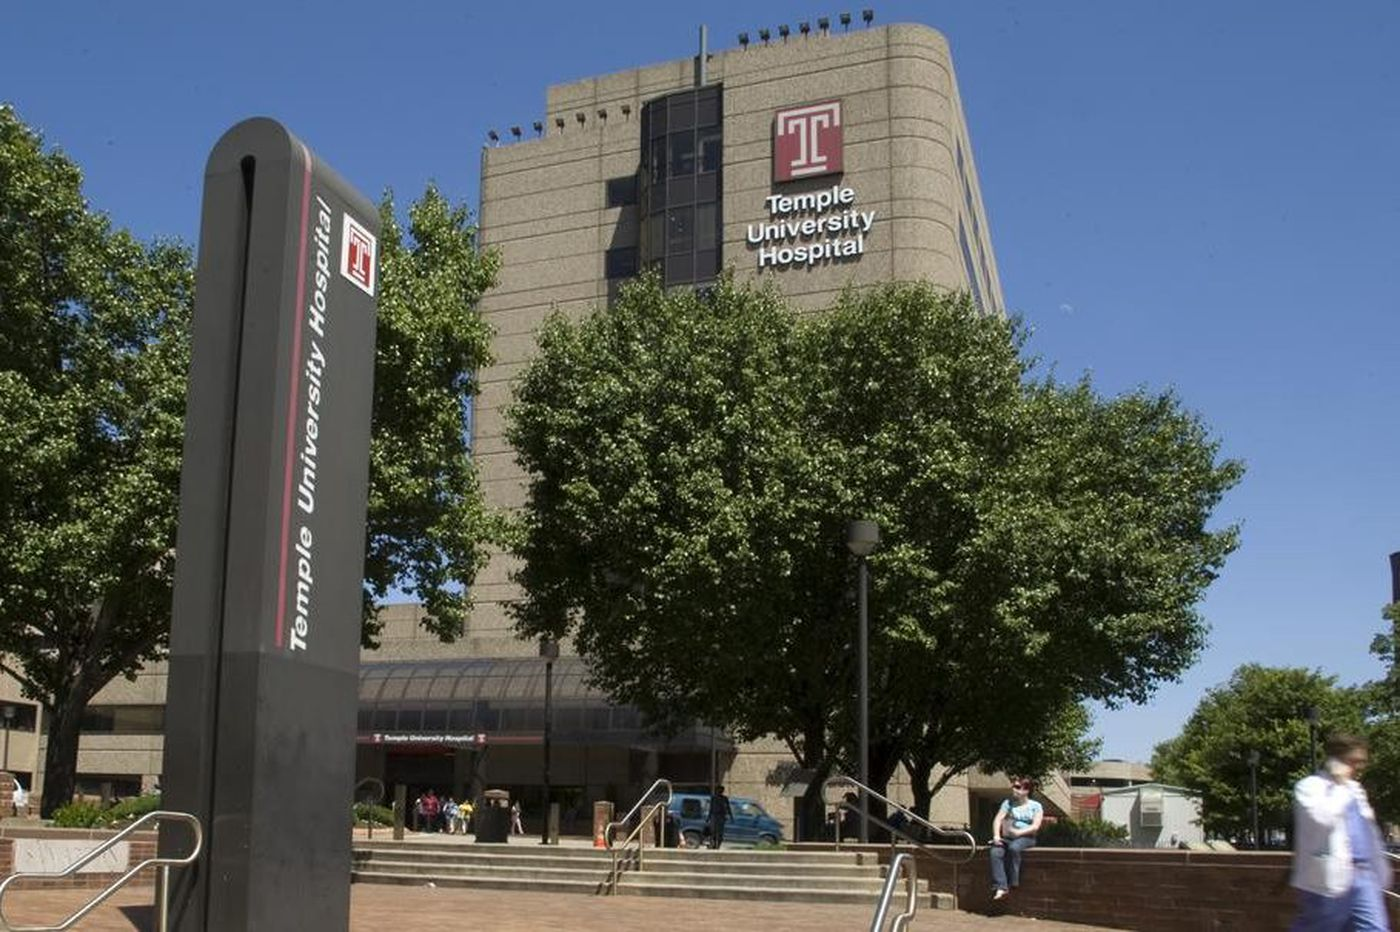 Temple University adds to health system board amid restructuring